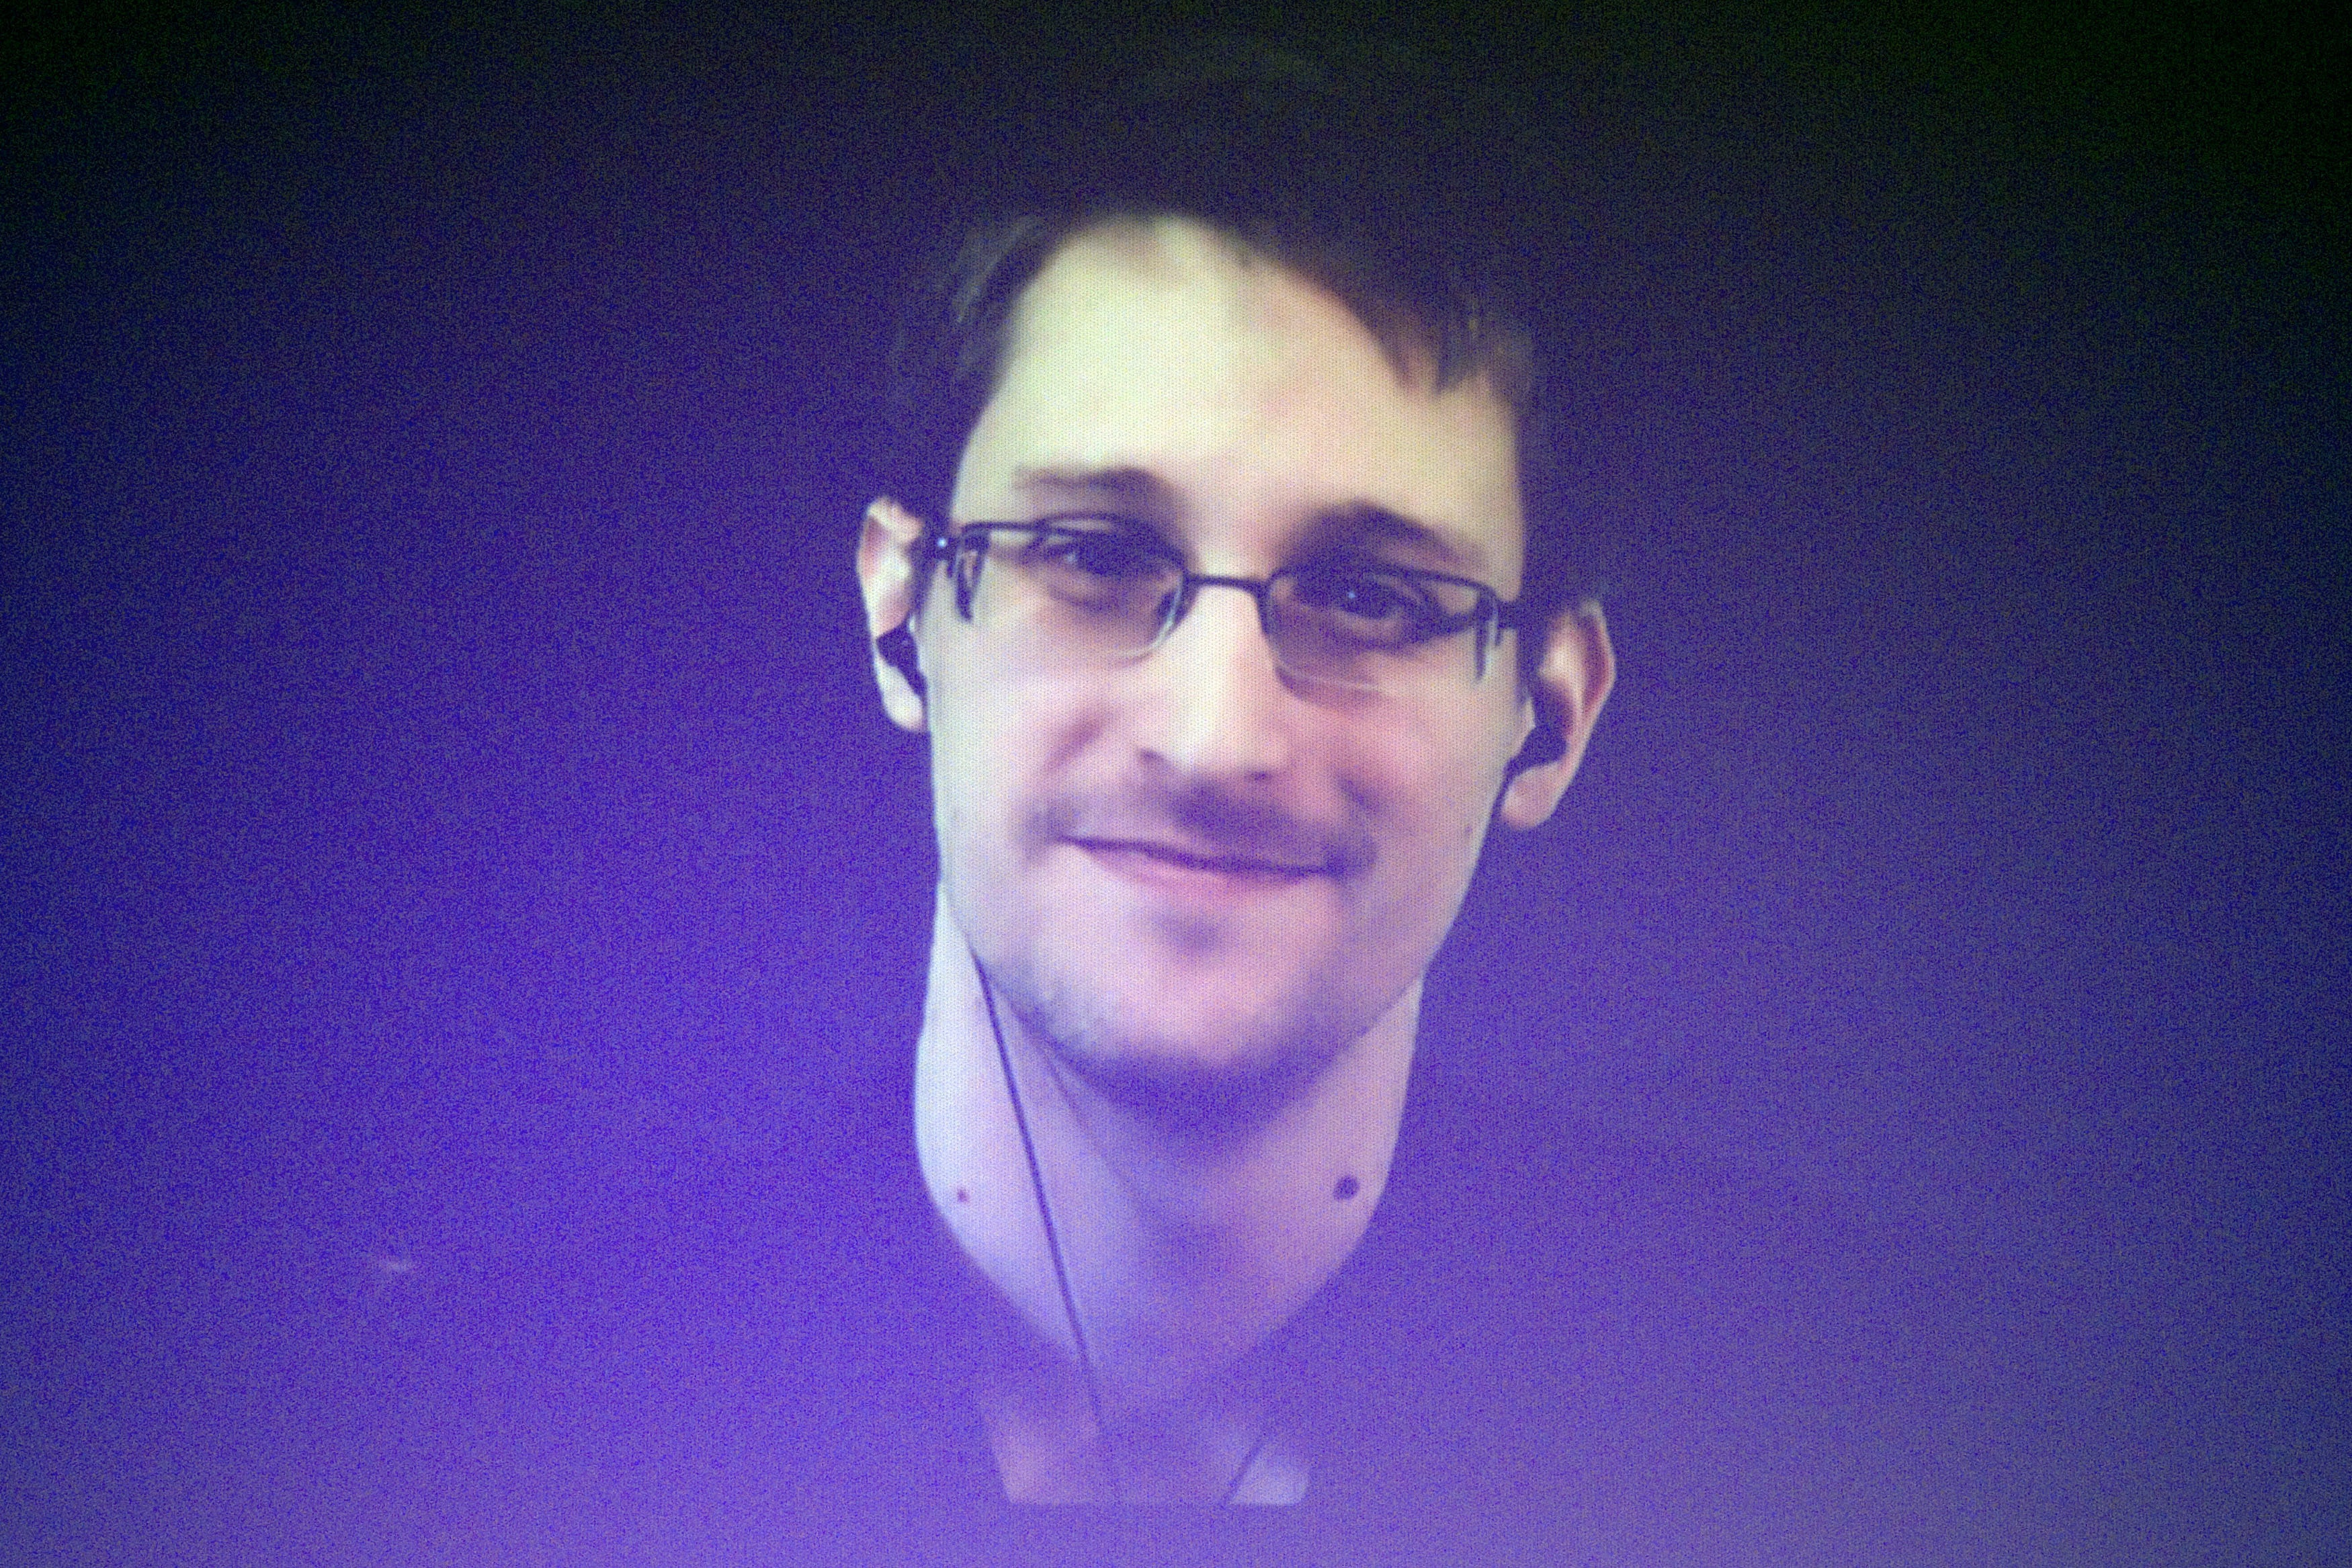 Edward Snowden will soon sign a petition for asylum 16.07.2013 28